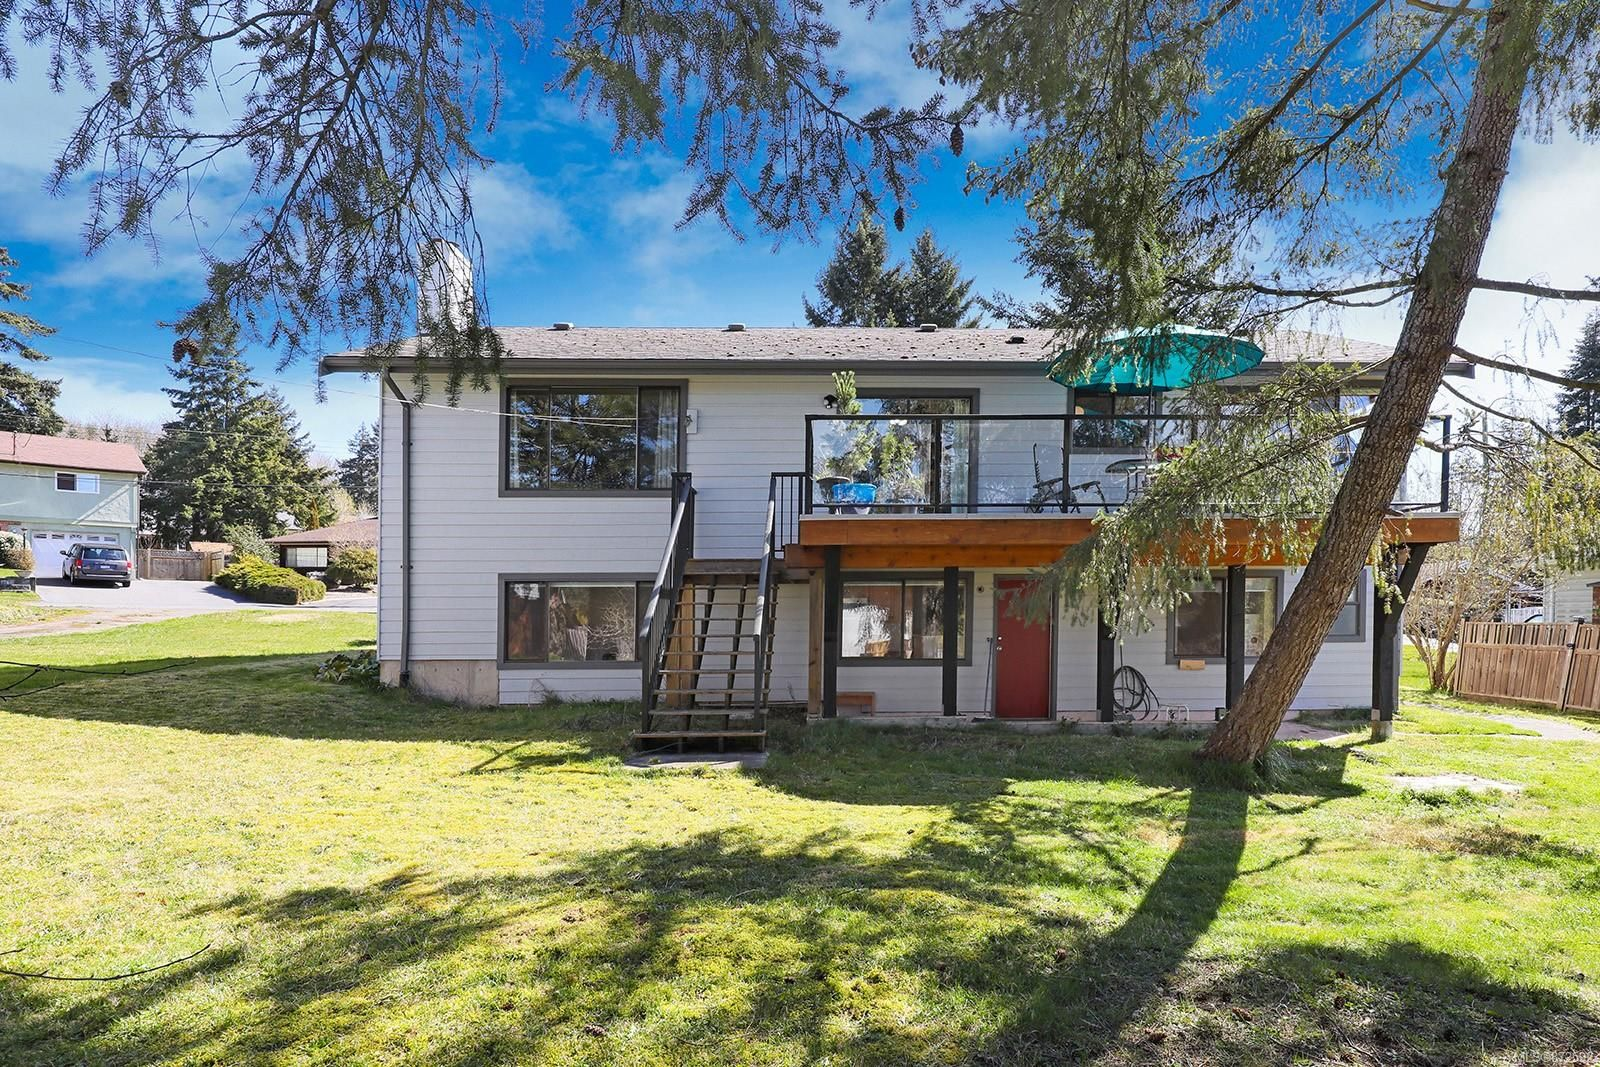 Photo 4: Photos: 1626 Valley Cres in : CV Courtenay East House for sale (Comox Valley)  : MLS®# 872592